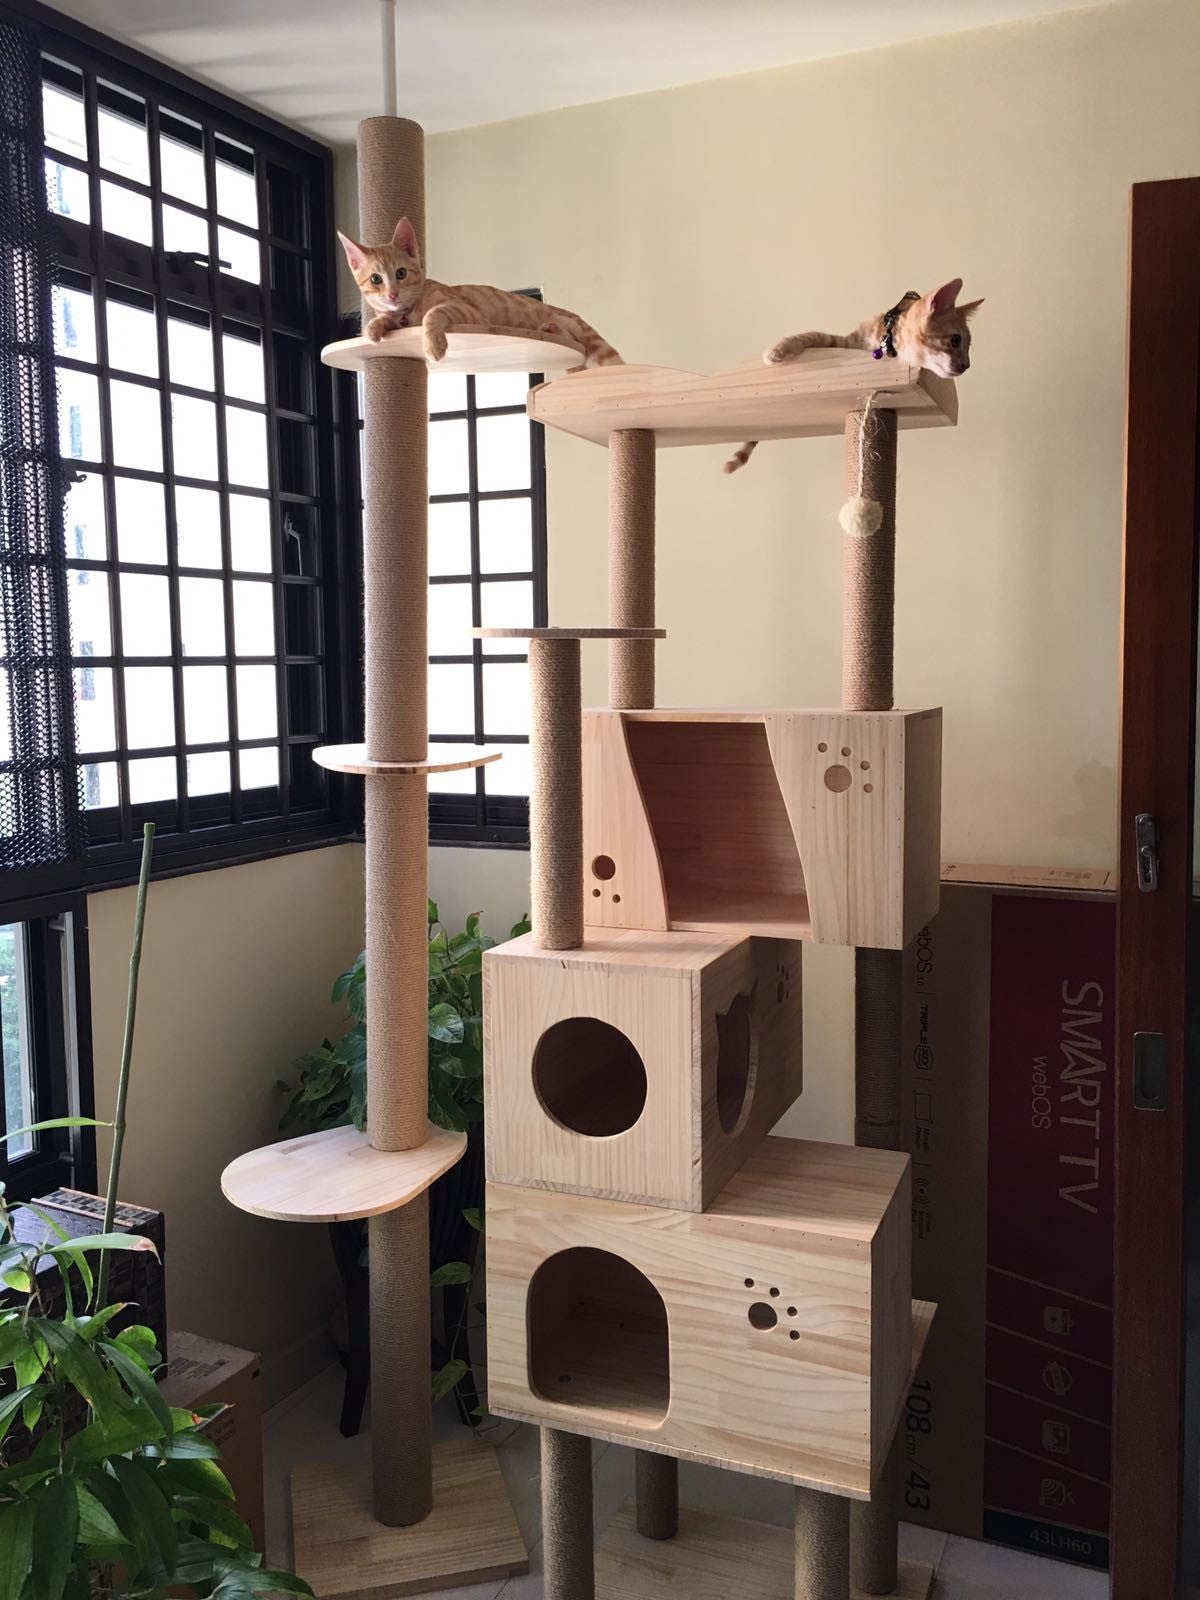 Pvc Pole Deluxe 1 8m Wooden Cat Furniture W Triple Houses